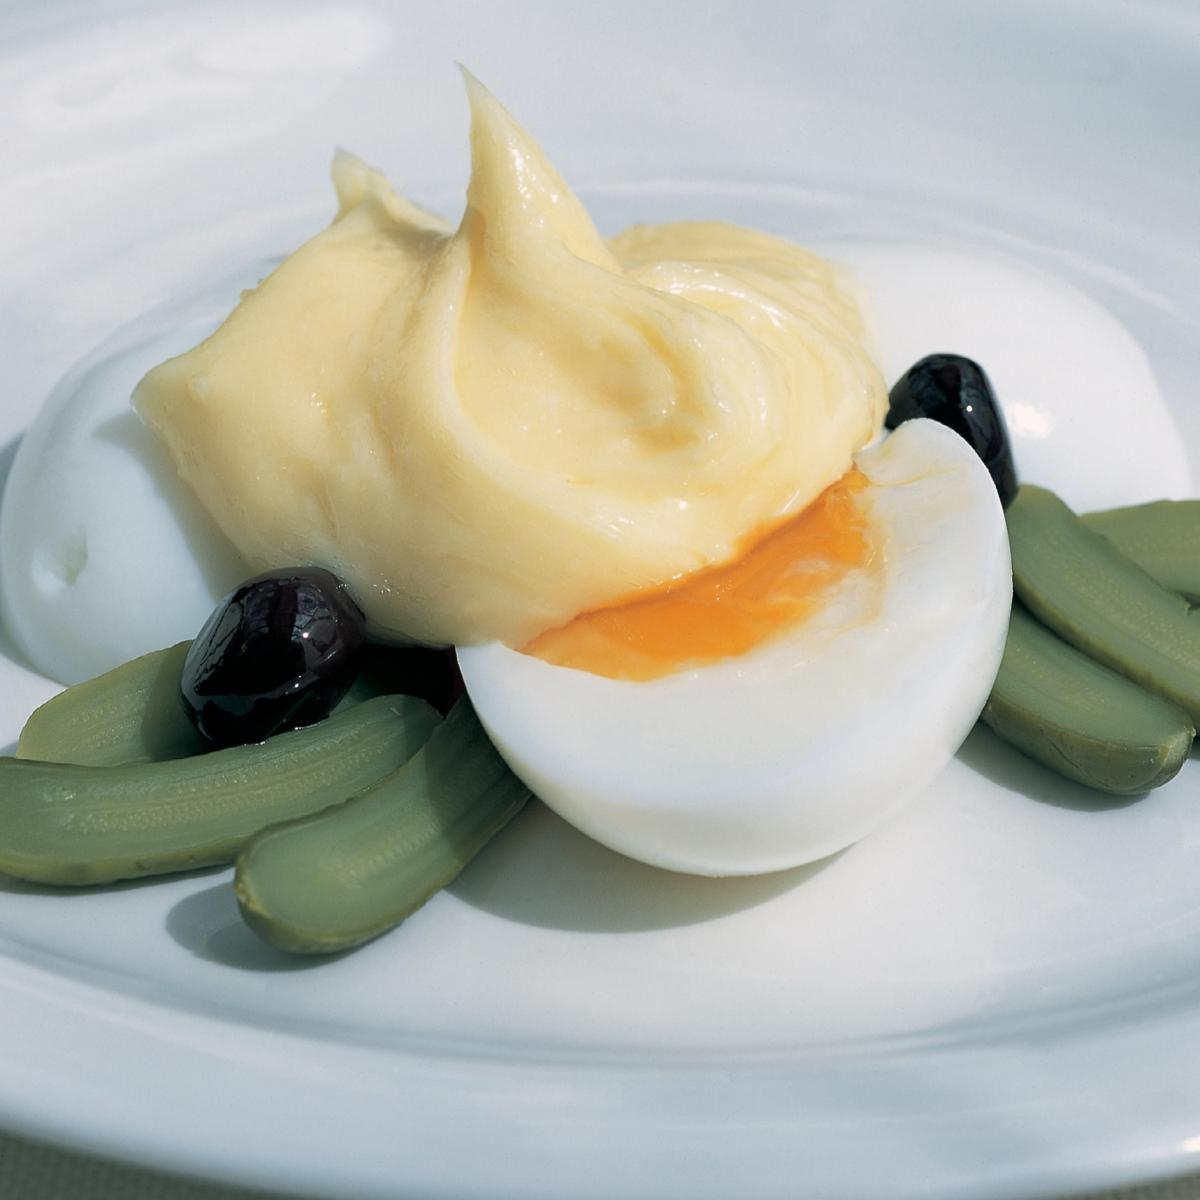 Poached Eggs with Chive Hollandaise Sauce Recipe Poached Eggs with Chive Hollandaise Sauce Recipe new pictures